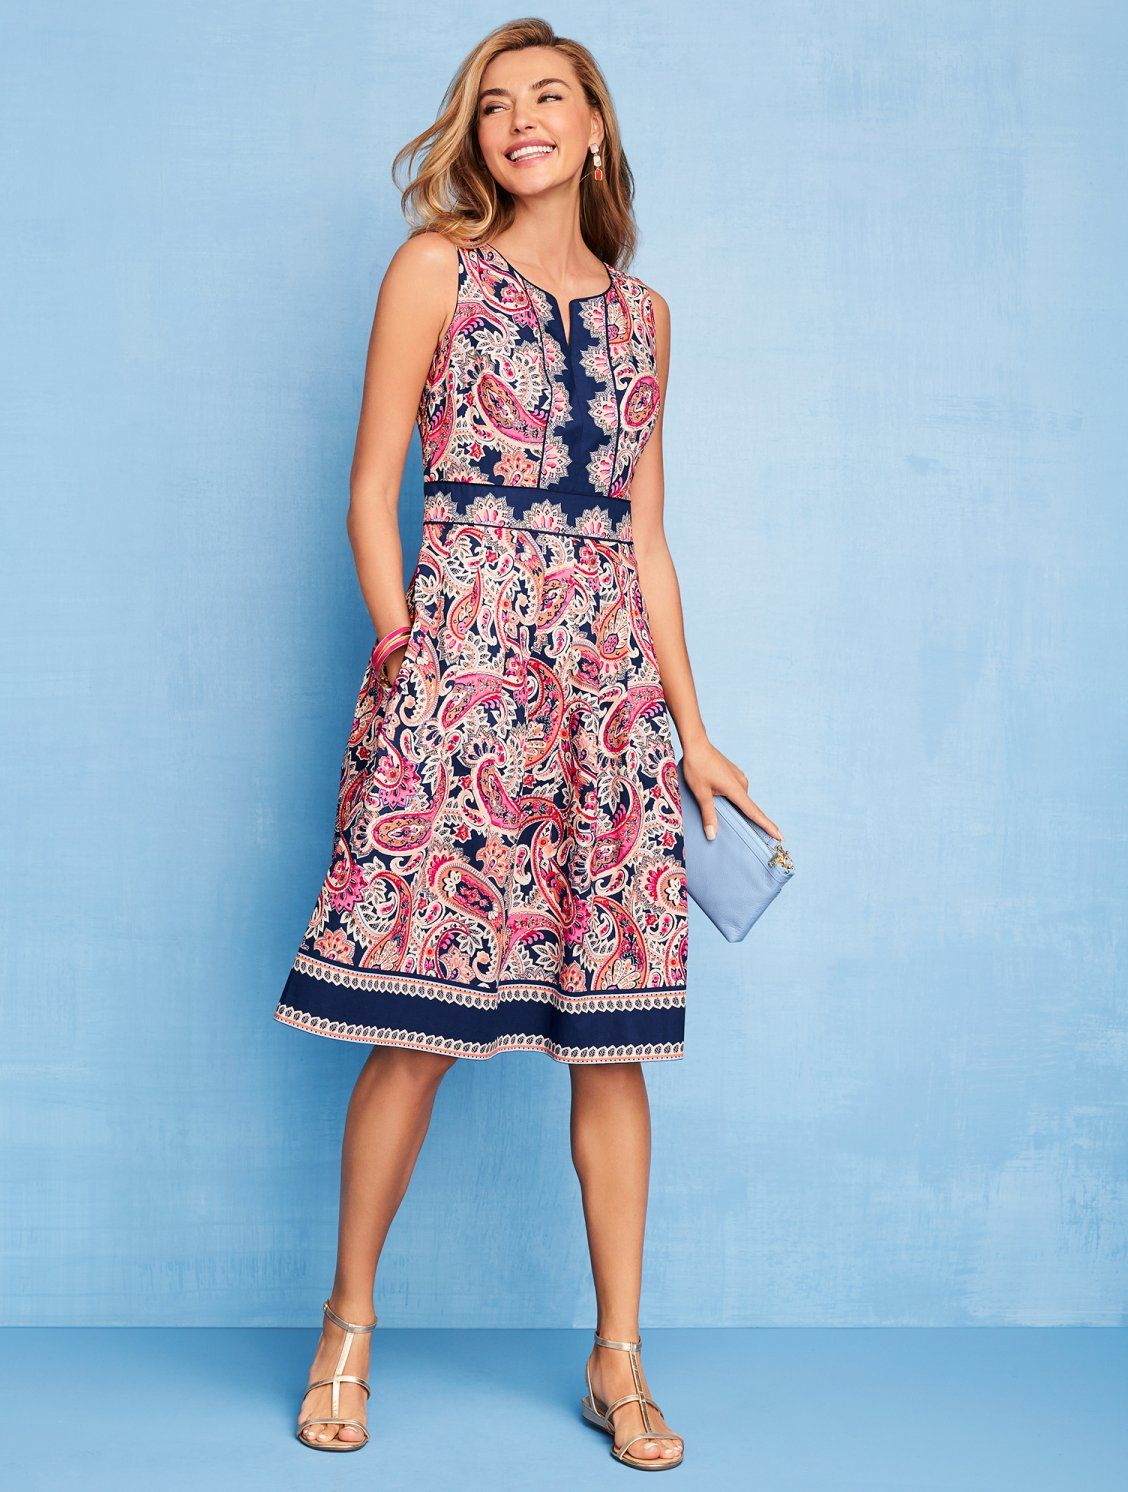 The Details Of This Trend Right Dress Make It A Fabulous And Fashionable Choice For All Your Special Occasions F Flare Dress Fit Flare Dress Shrug For Dresses [ 1492 x 1128 Pixel ]